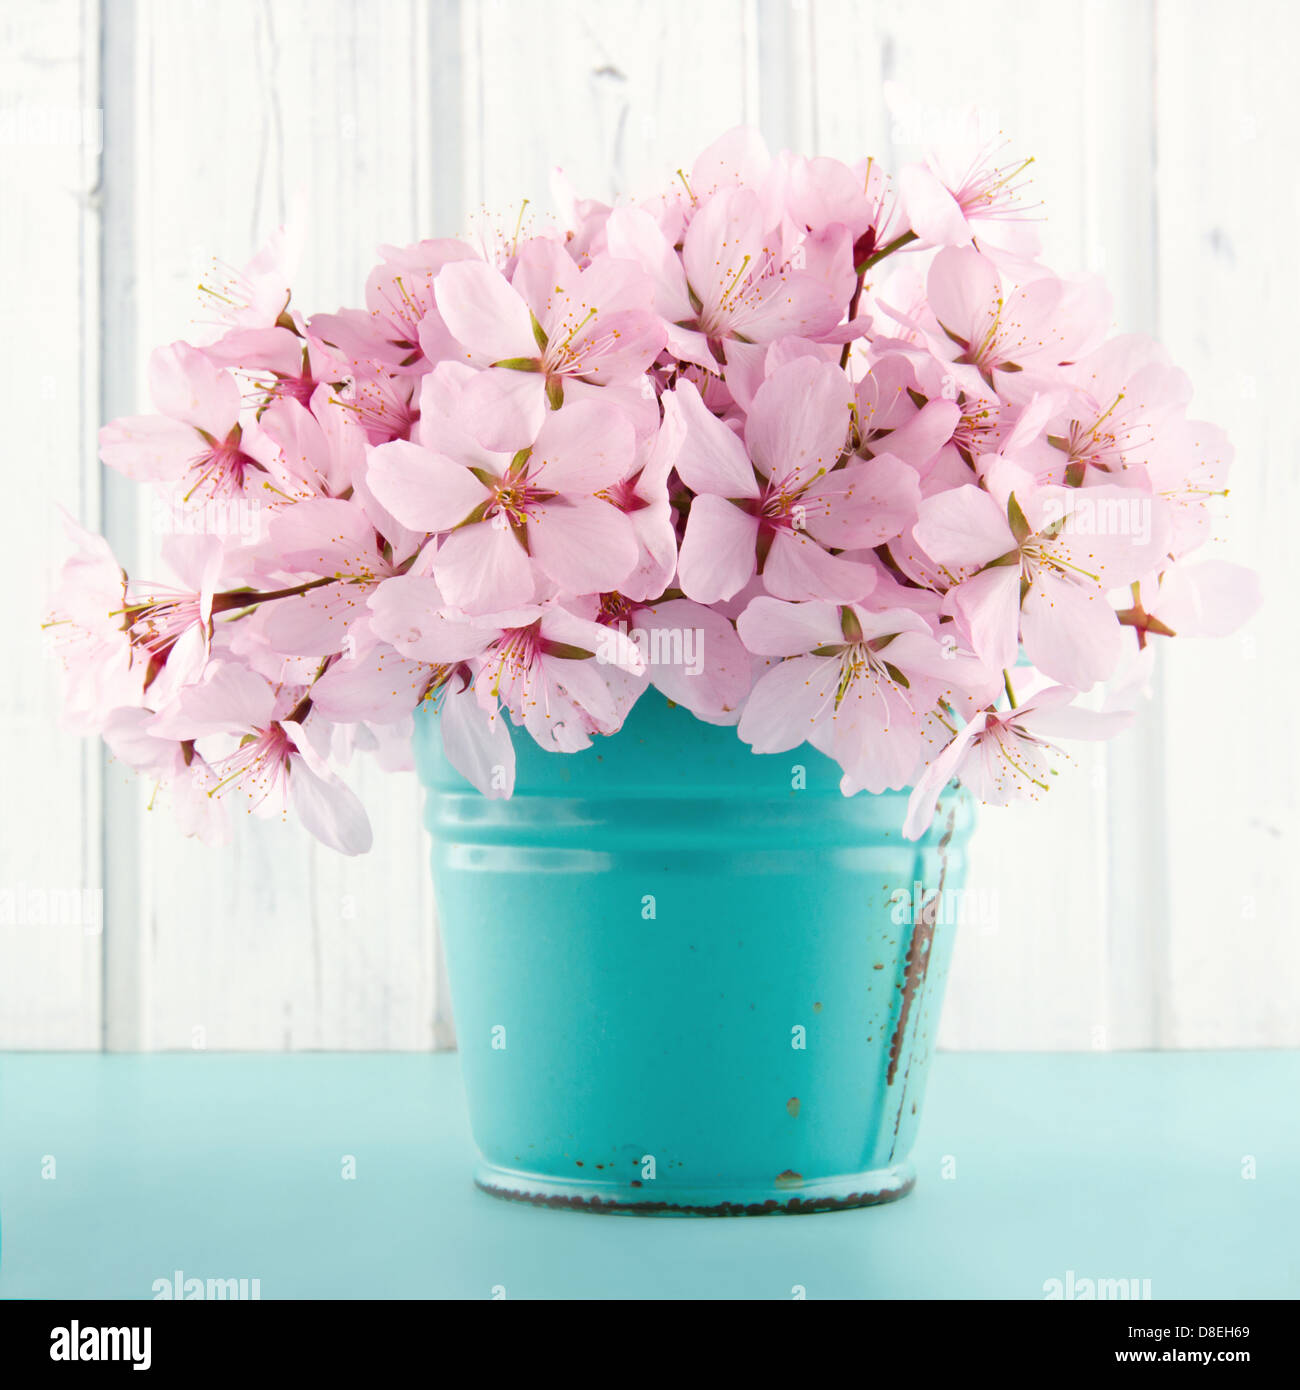 Pink cherry blossom flower bouquet on light blue vintage and white ...